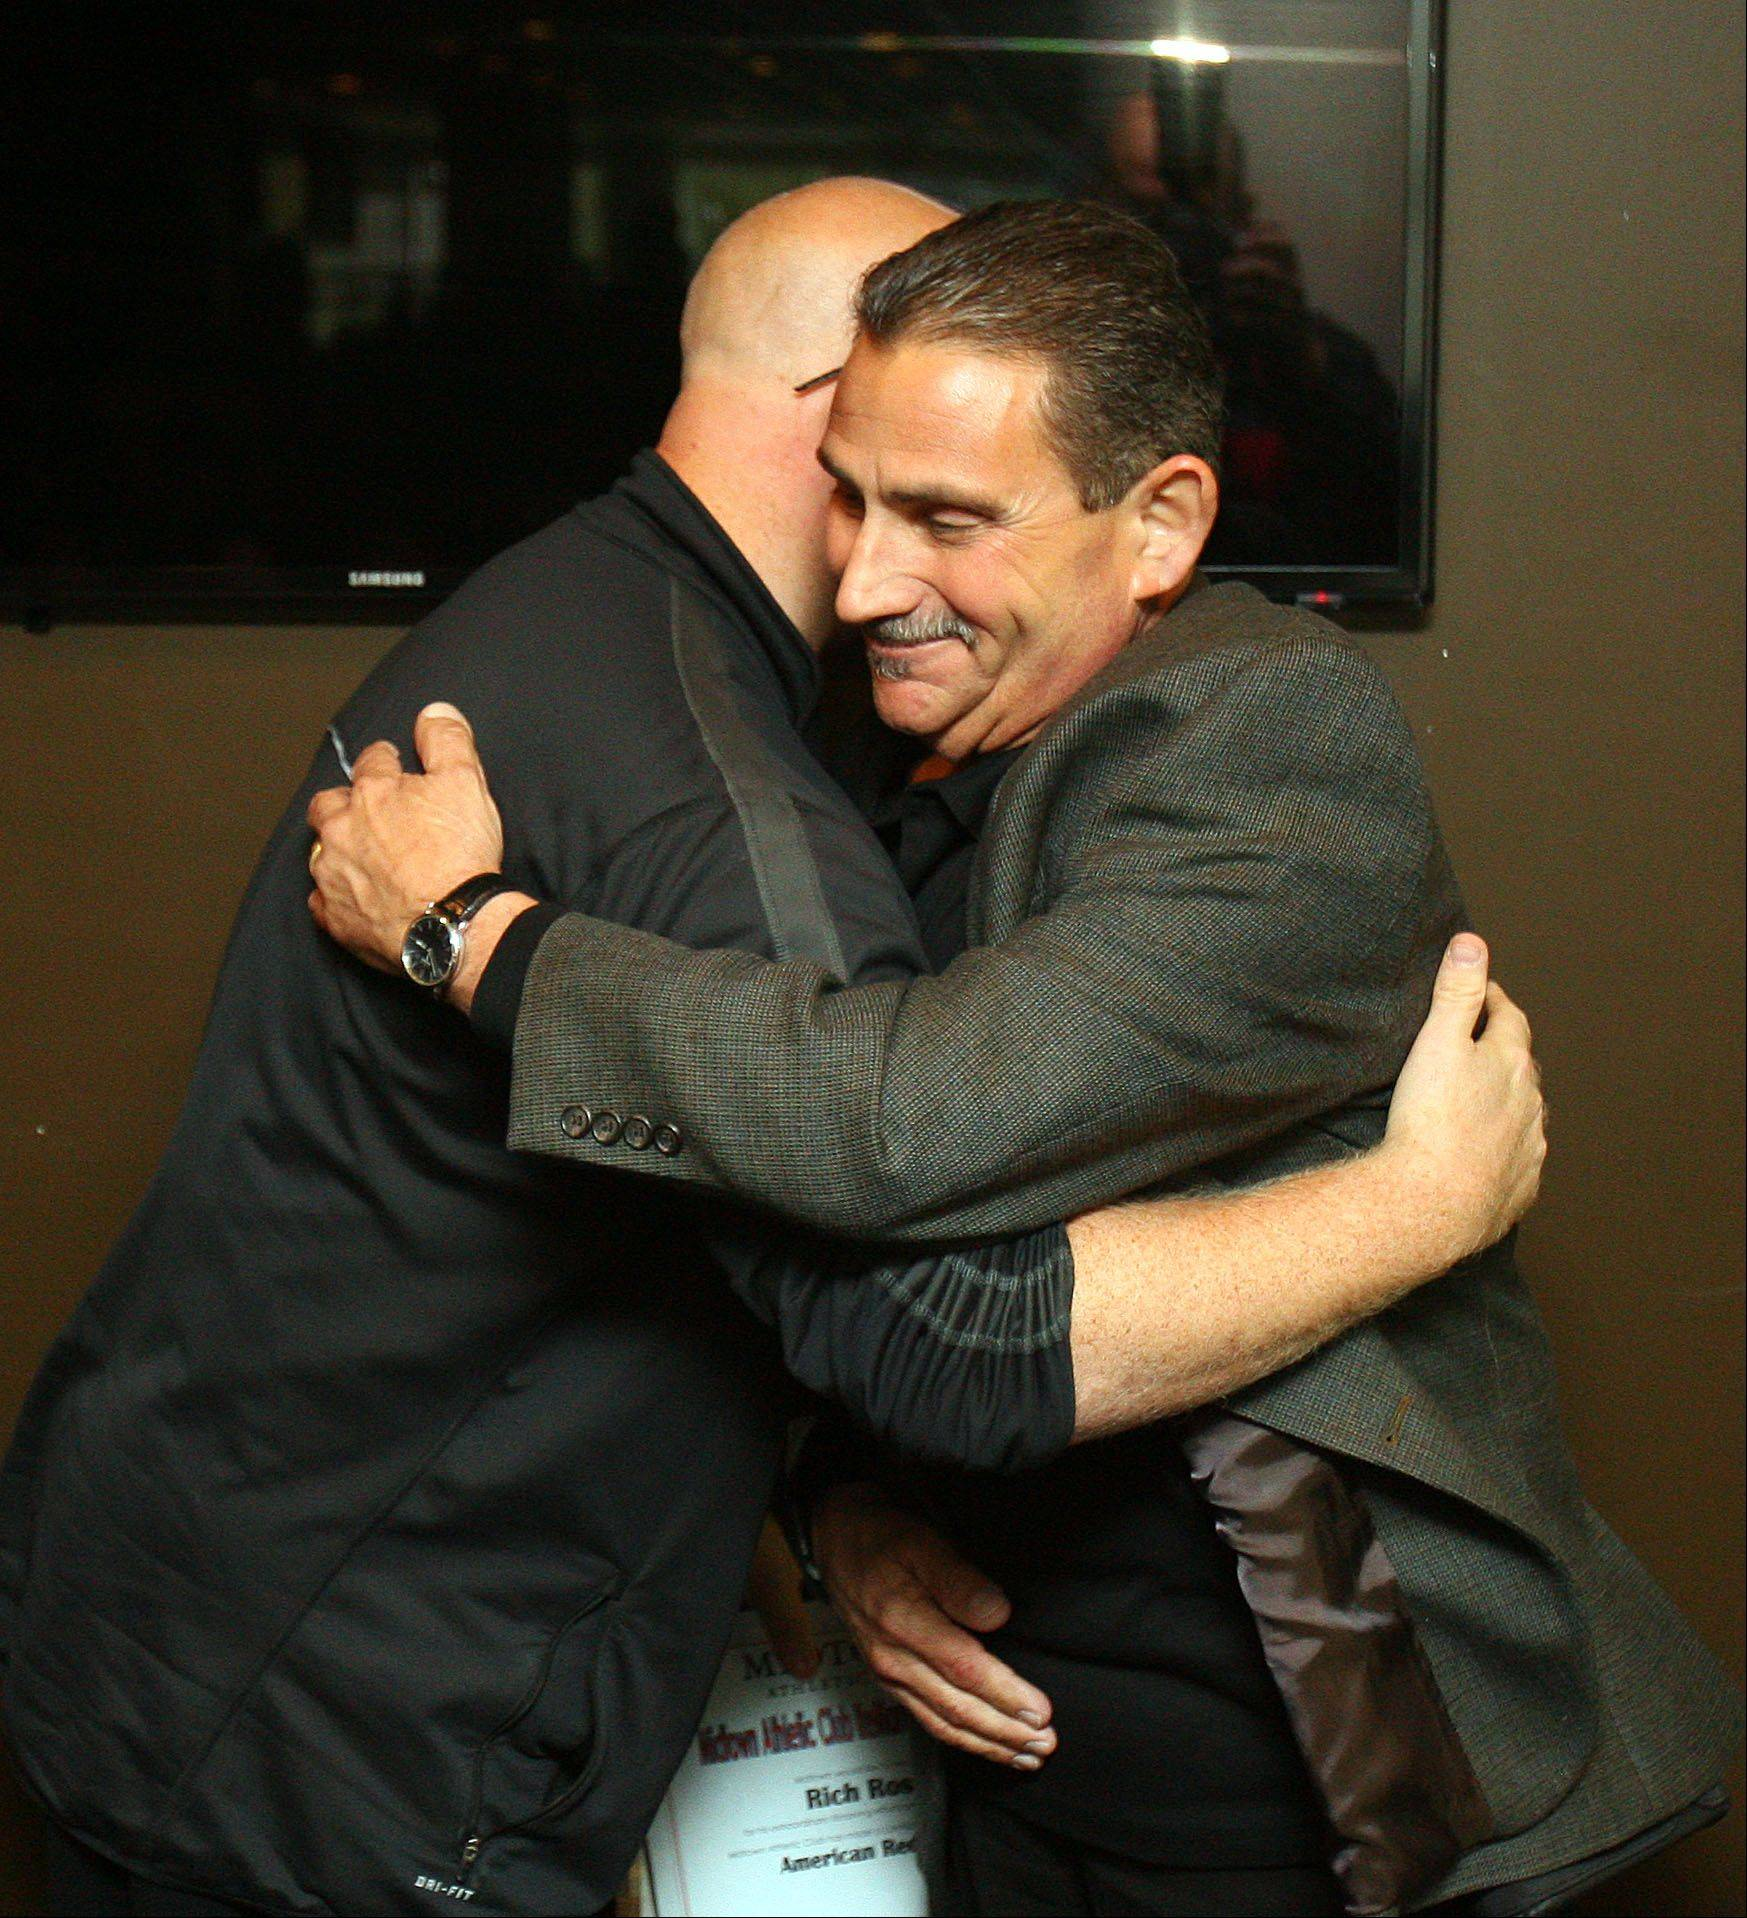 Gary Greenberg of Highland Park hugs Midtown Athletic Club personal trainer Rich Rossi during a ceremony at the facility in Bannockburn Thursday. Rossi, of Buffalo Grove, was honored for saving Greenberg after he suffered a heart attack.